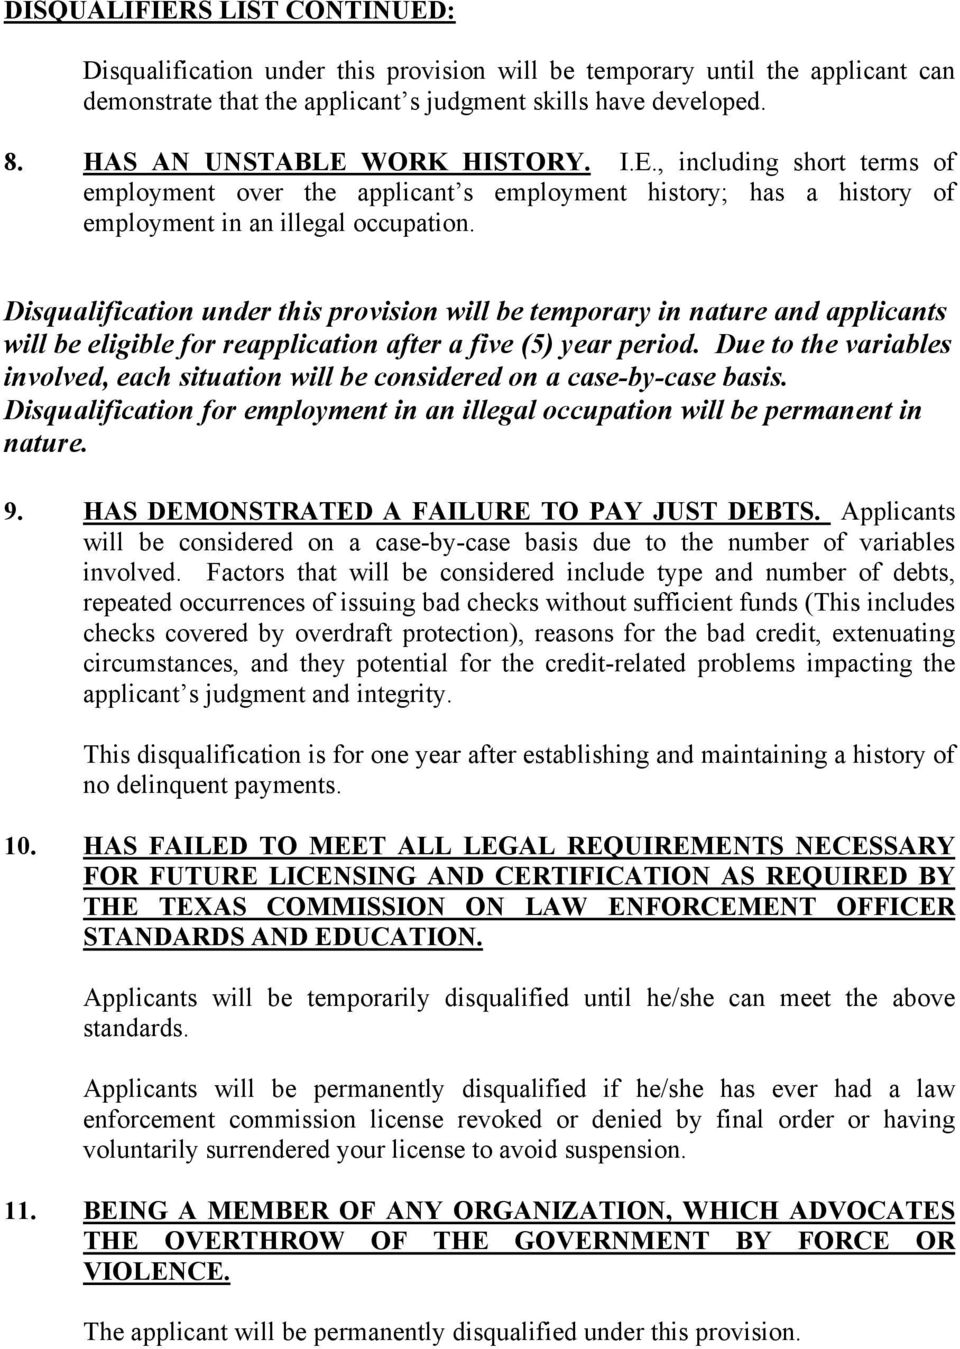 Disqualification under this provision will be temporary in nature and applicants will be eligible for reapplication after a five (5) year period.